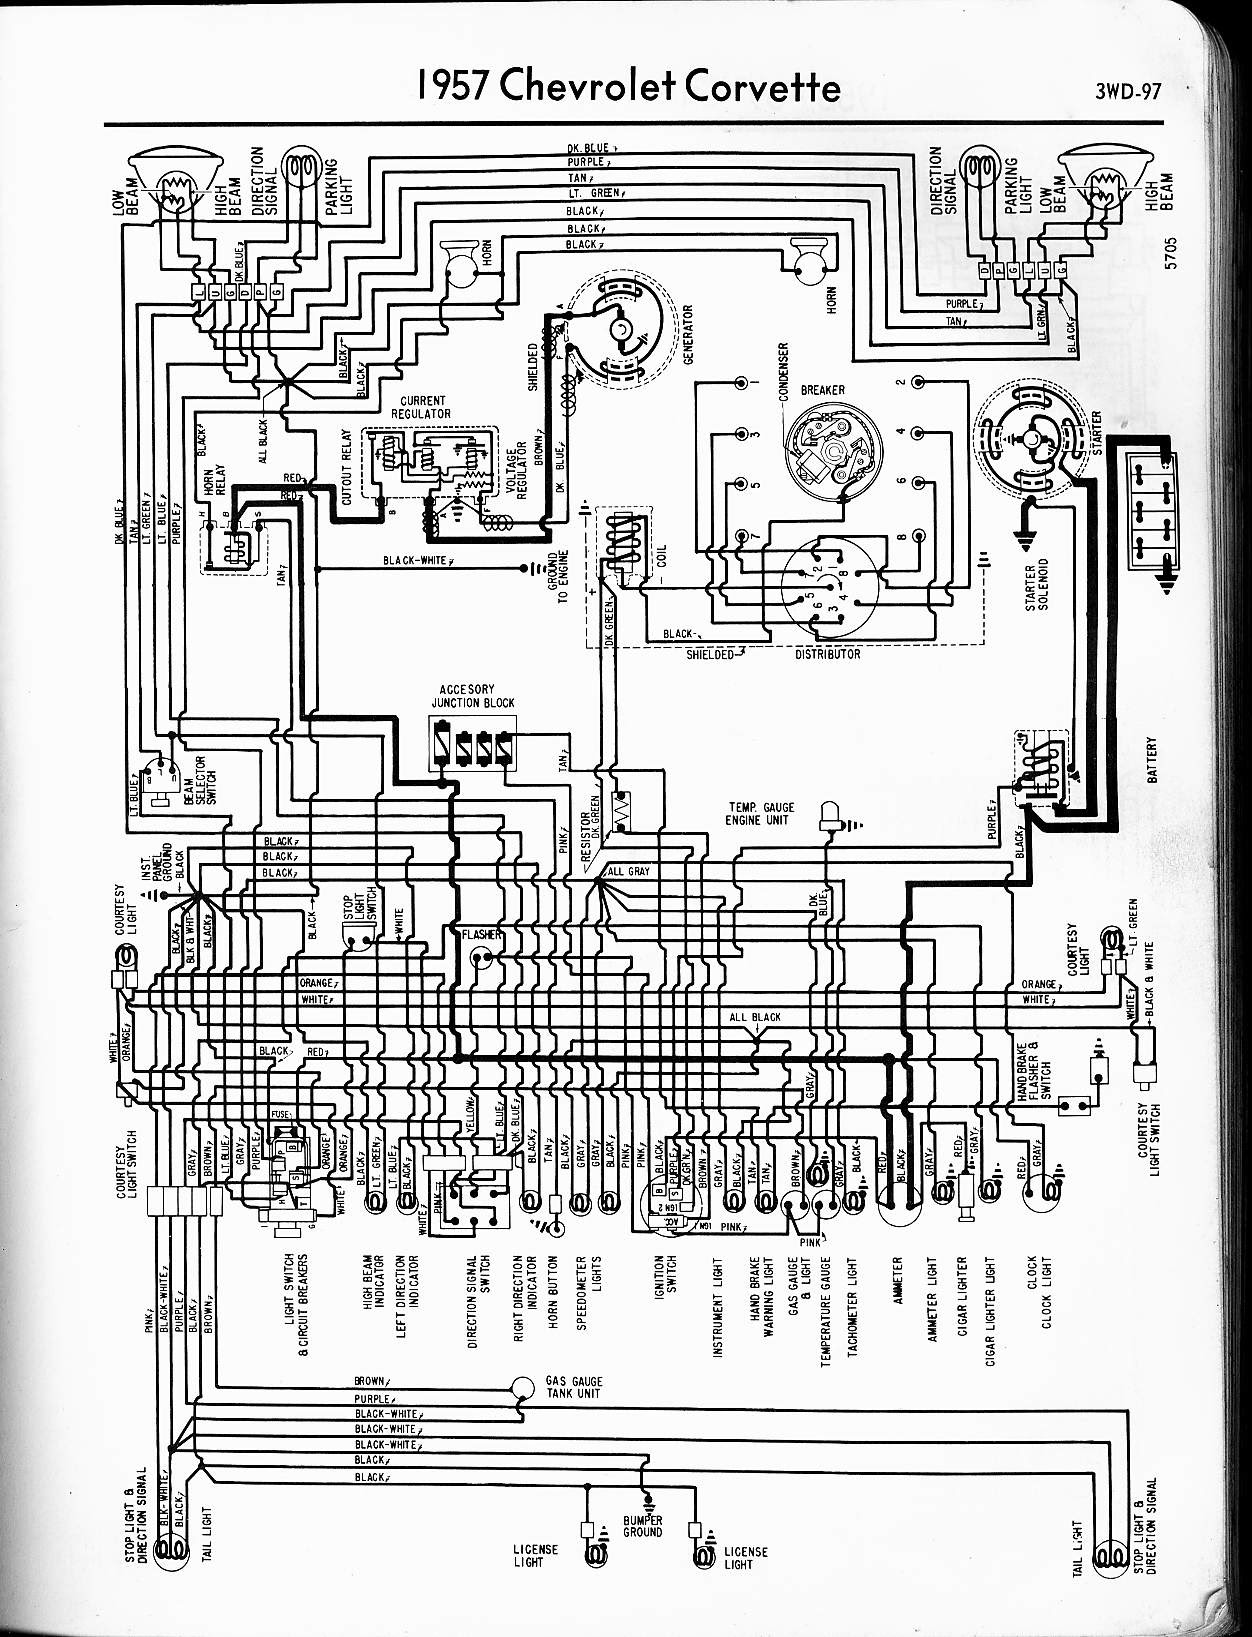 1958 Chevrolet Delray Wiring Diagram Wiring Diagram Frame Frame Cfcarsnoleggio It